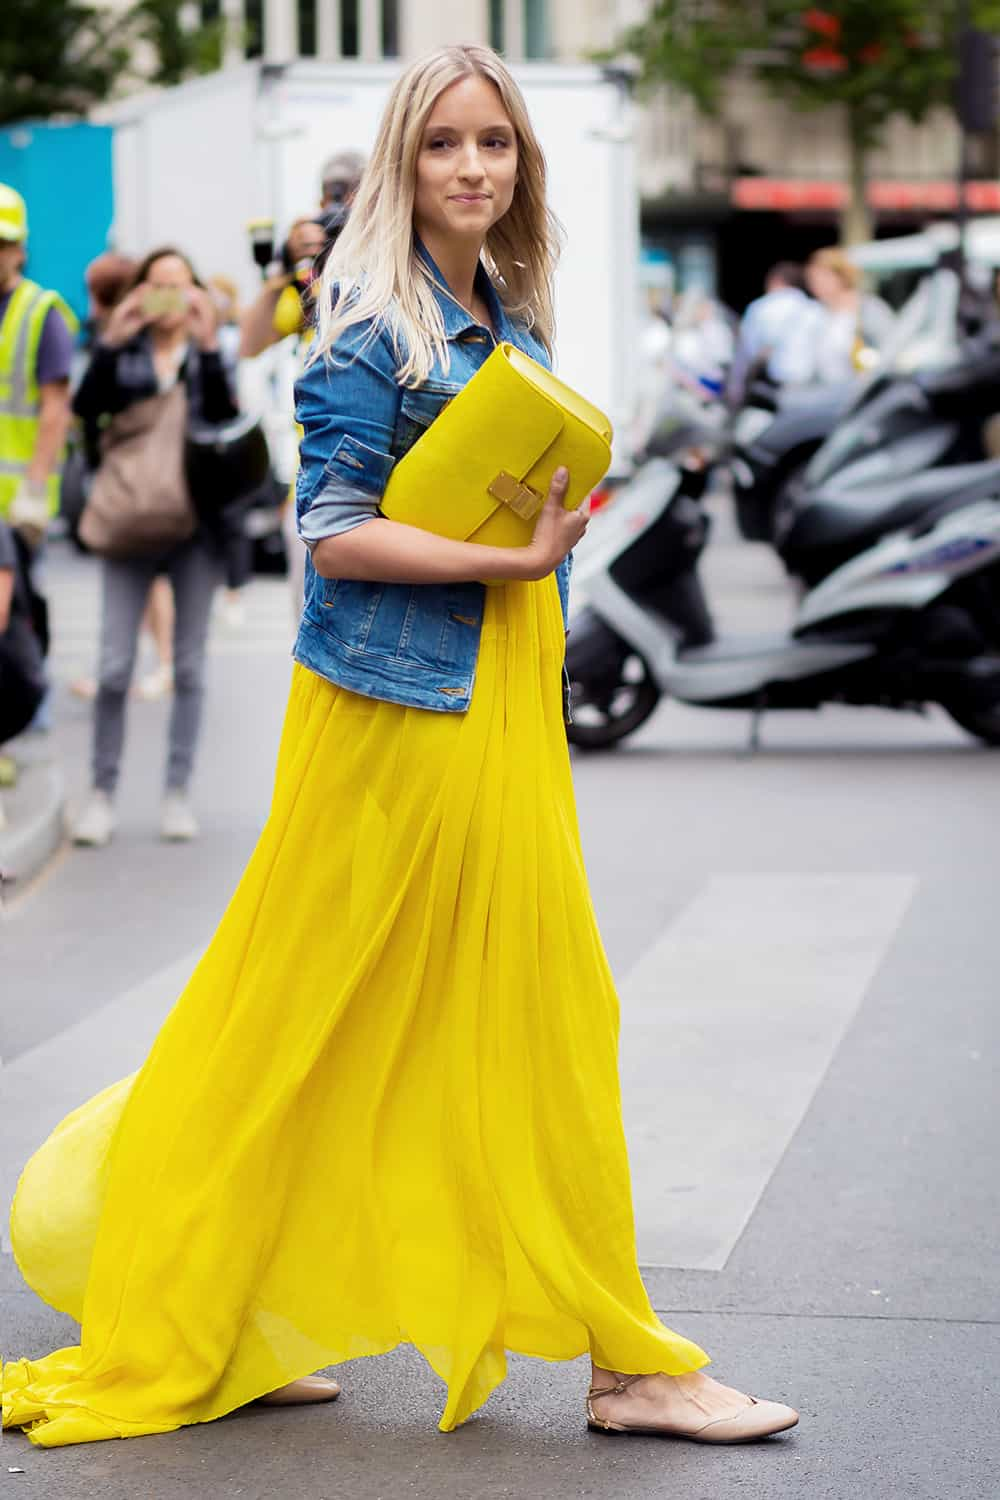 How To Wear A Maxi Dress In 2016 Summer The Fashion Tag